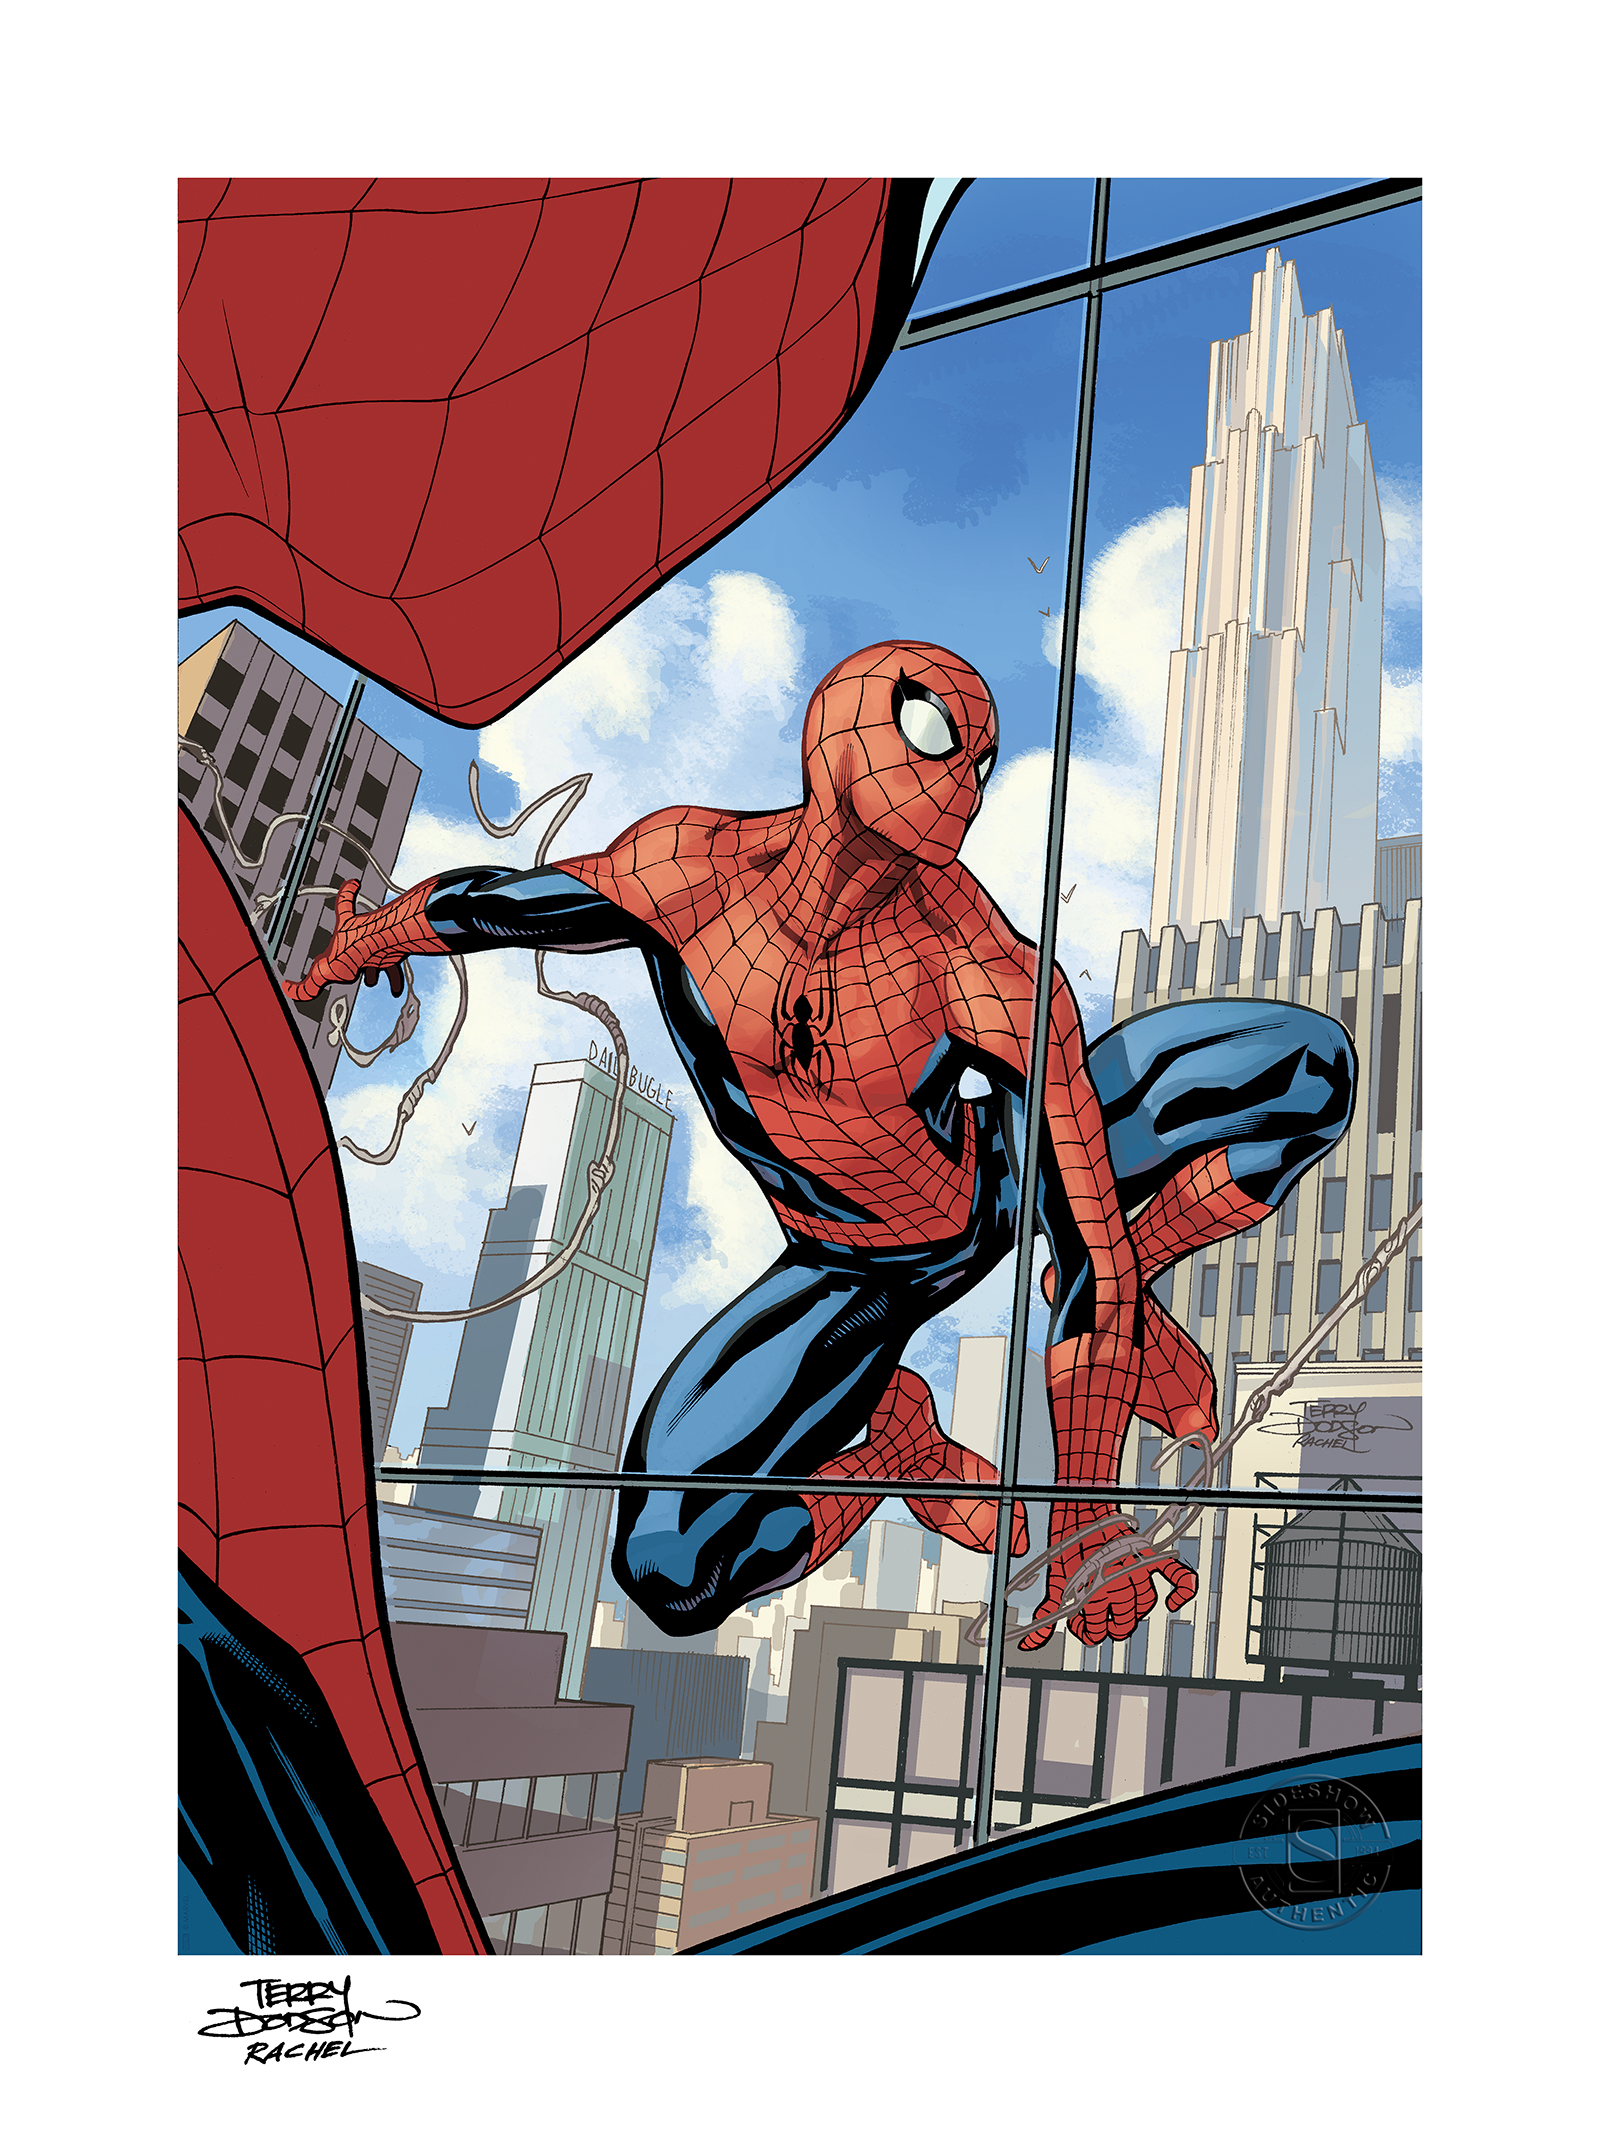 sideshow-the-amazing-spider-man-#800-art-print-toyslife